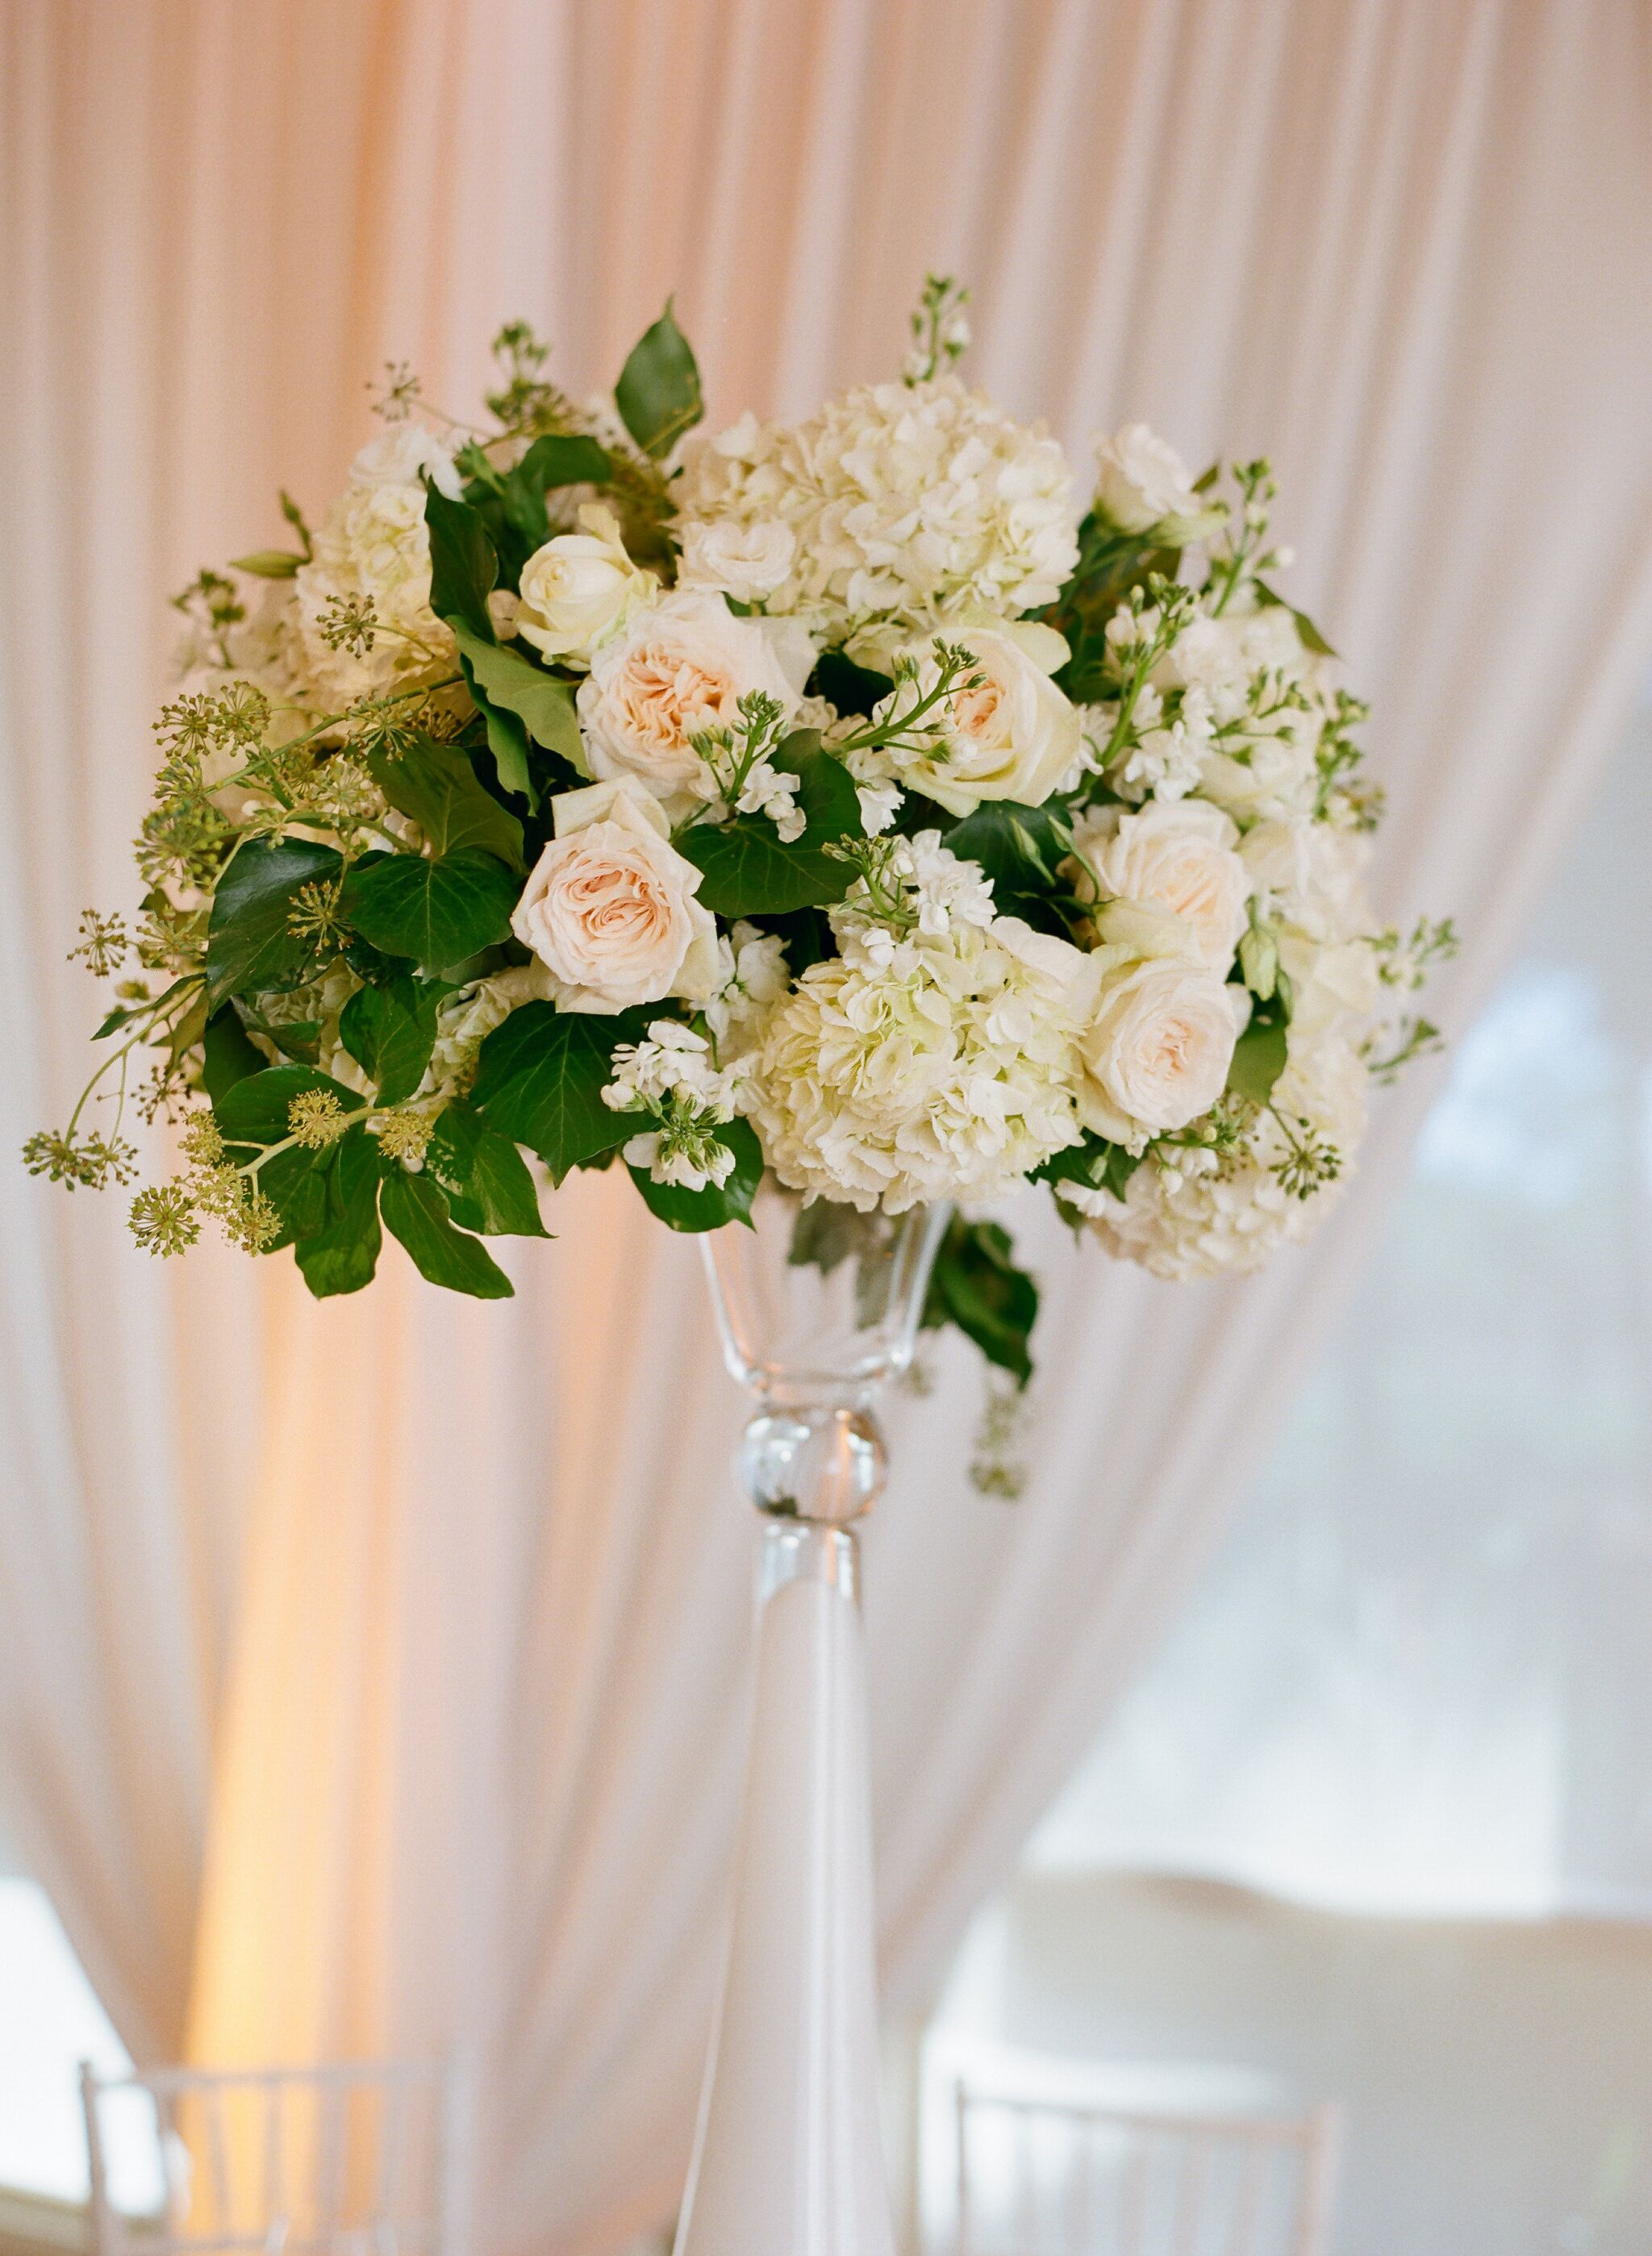 Hydrangea garden rose and greenery accented centerpiece